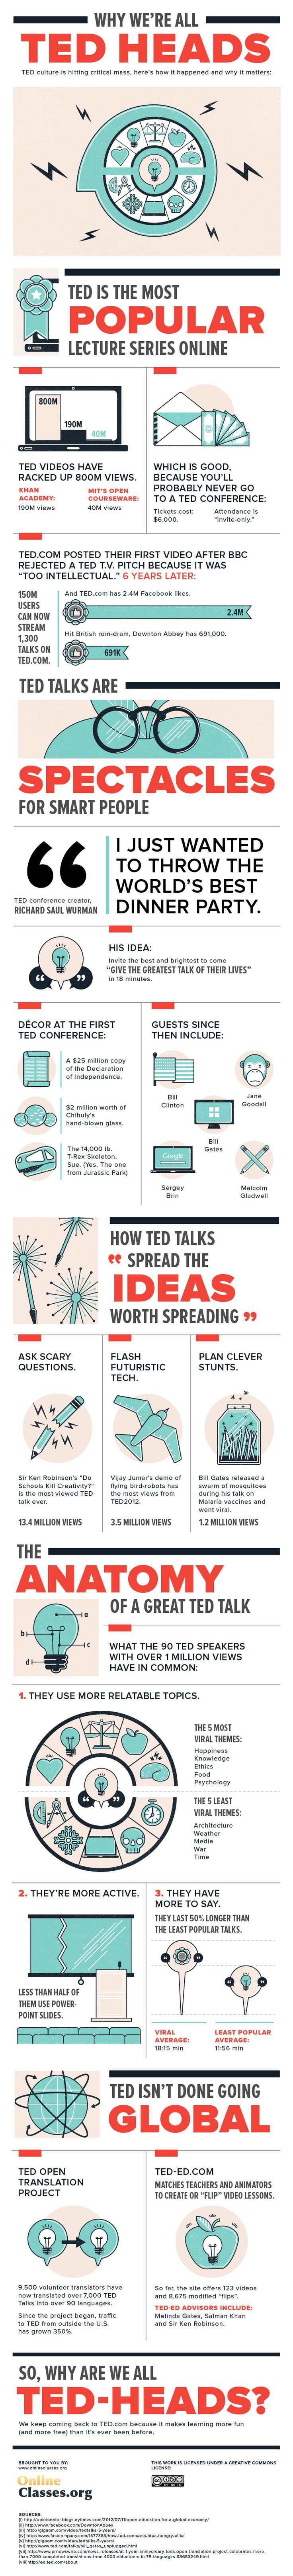 TED Talks Infographic... Thanks to @Laura Monroe for tweeting this earlier today... LOVE IT!